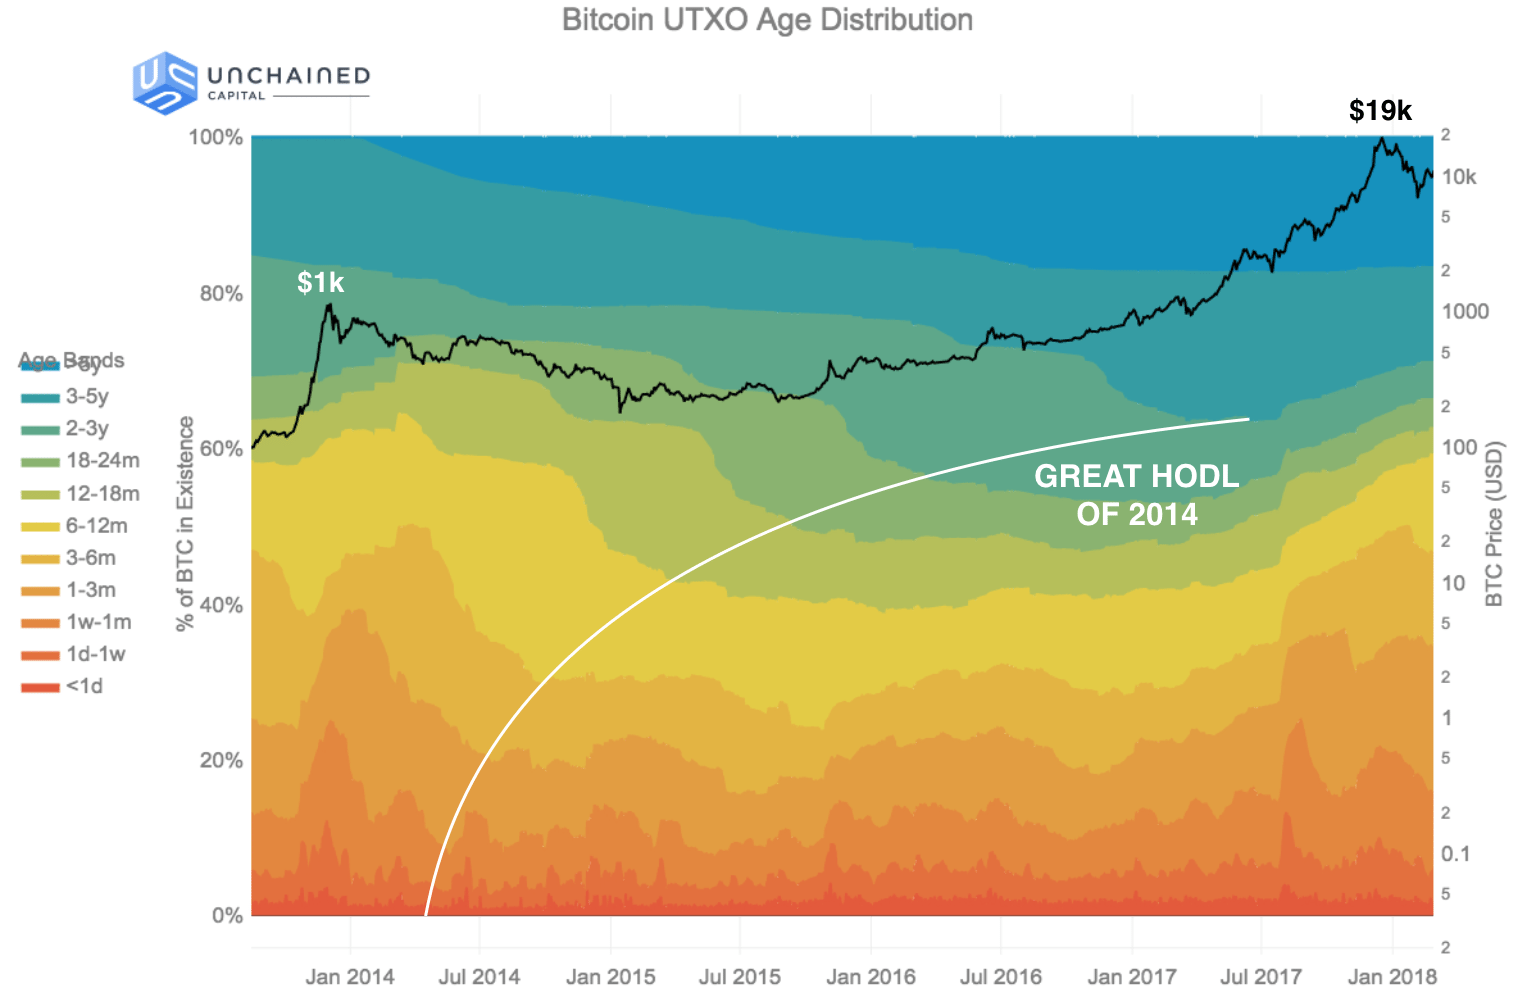 Great HODL 2014